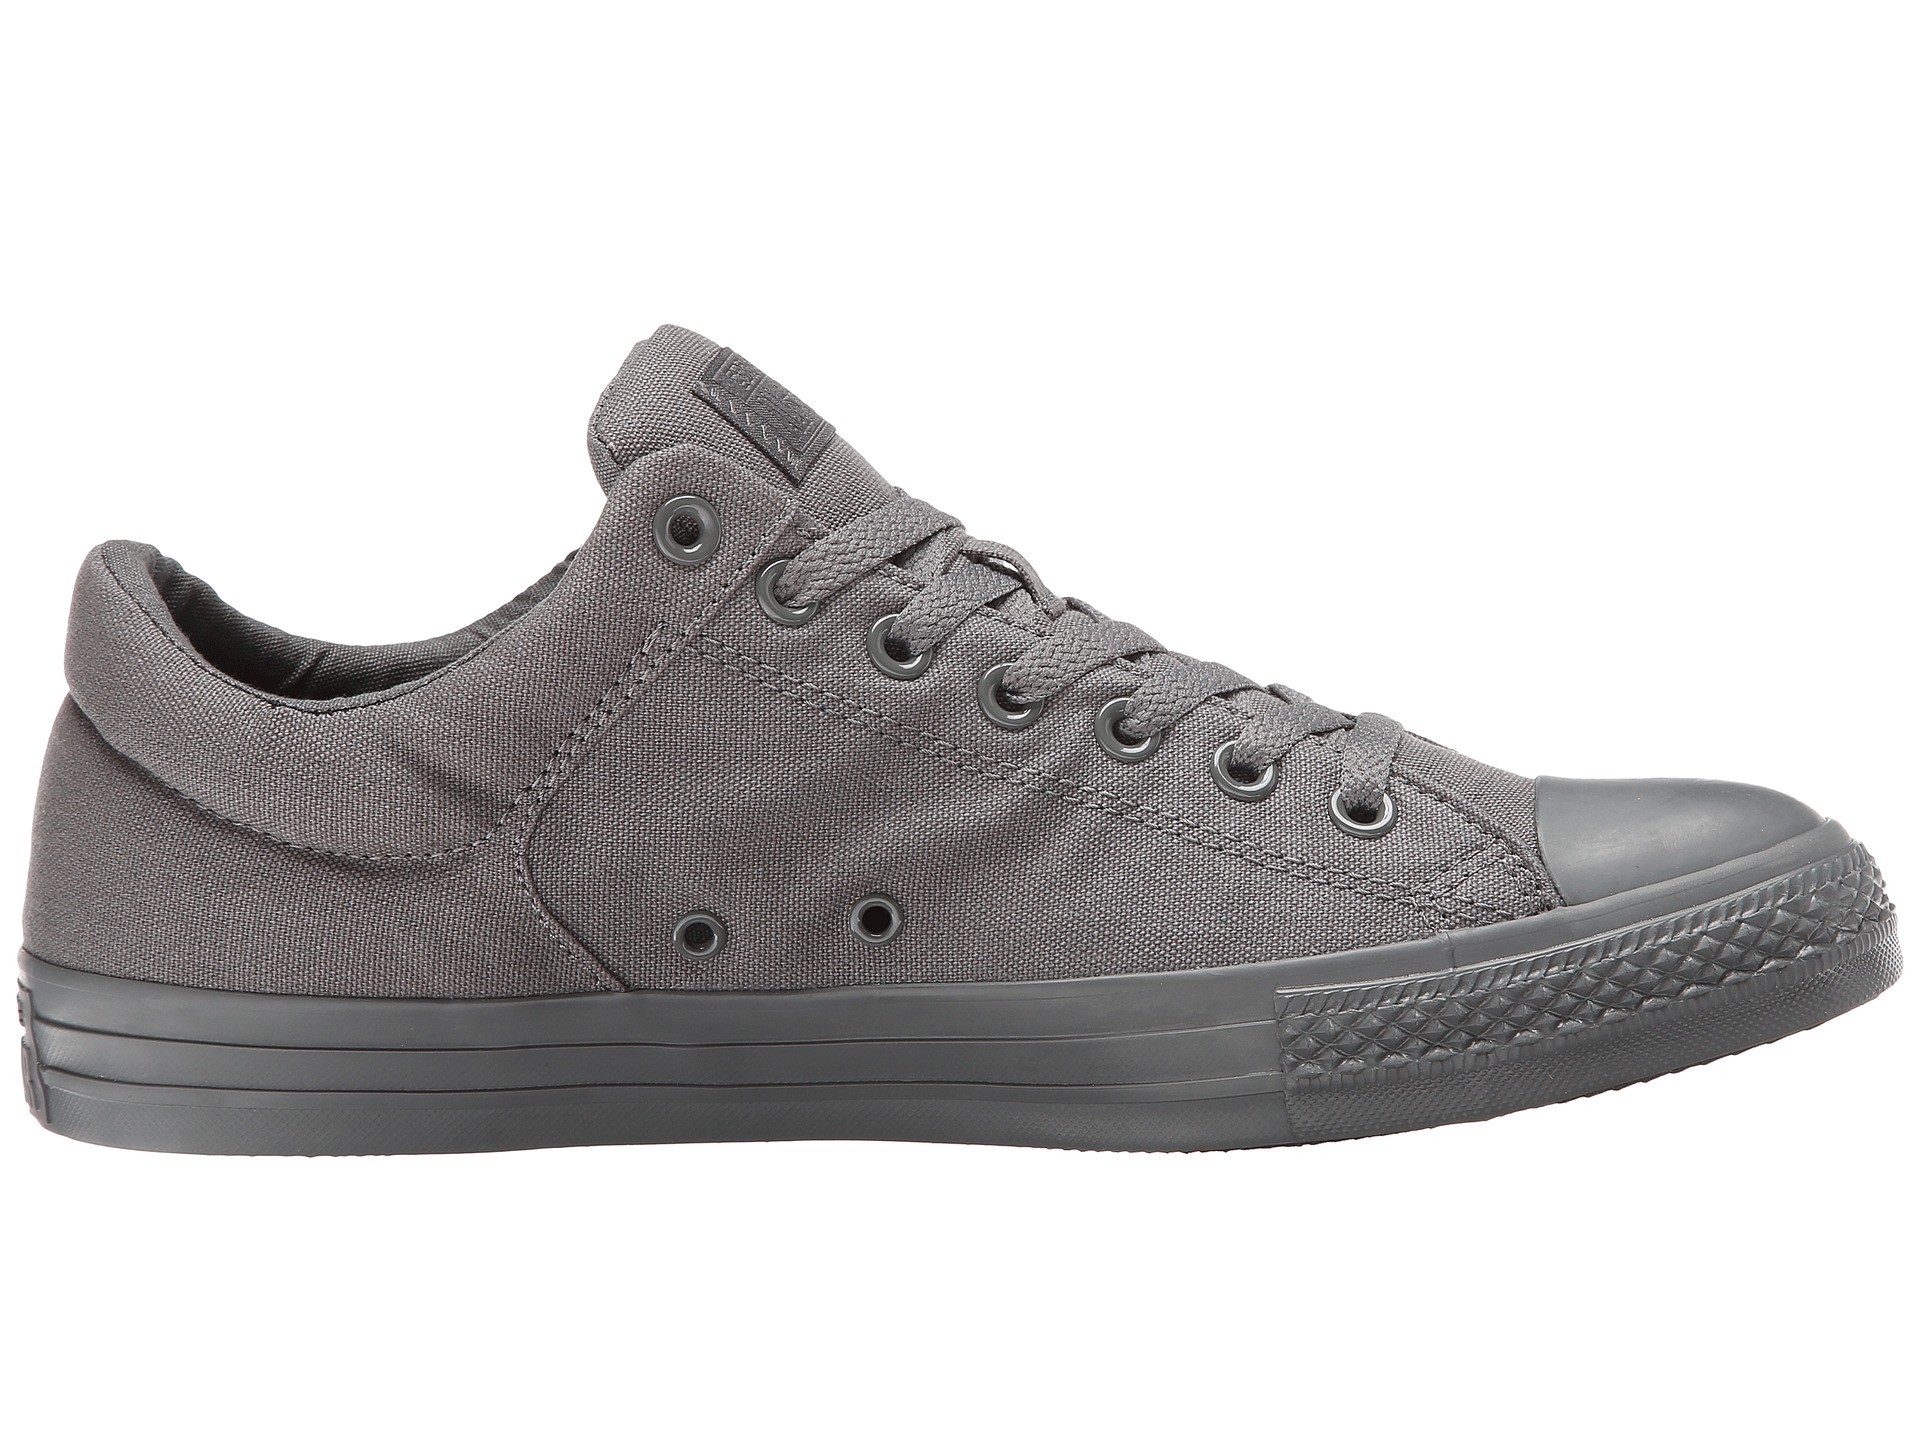 4f5f353c2332 Gallery. Previously sold at  Zappos · Women s Converse Chuck Taylor Women s  Ash Wedge Sneaker ...